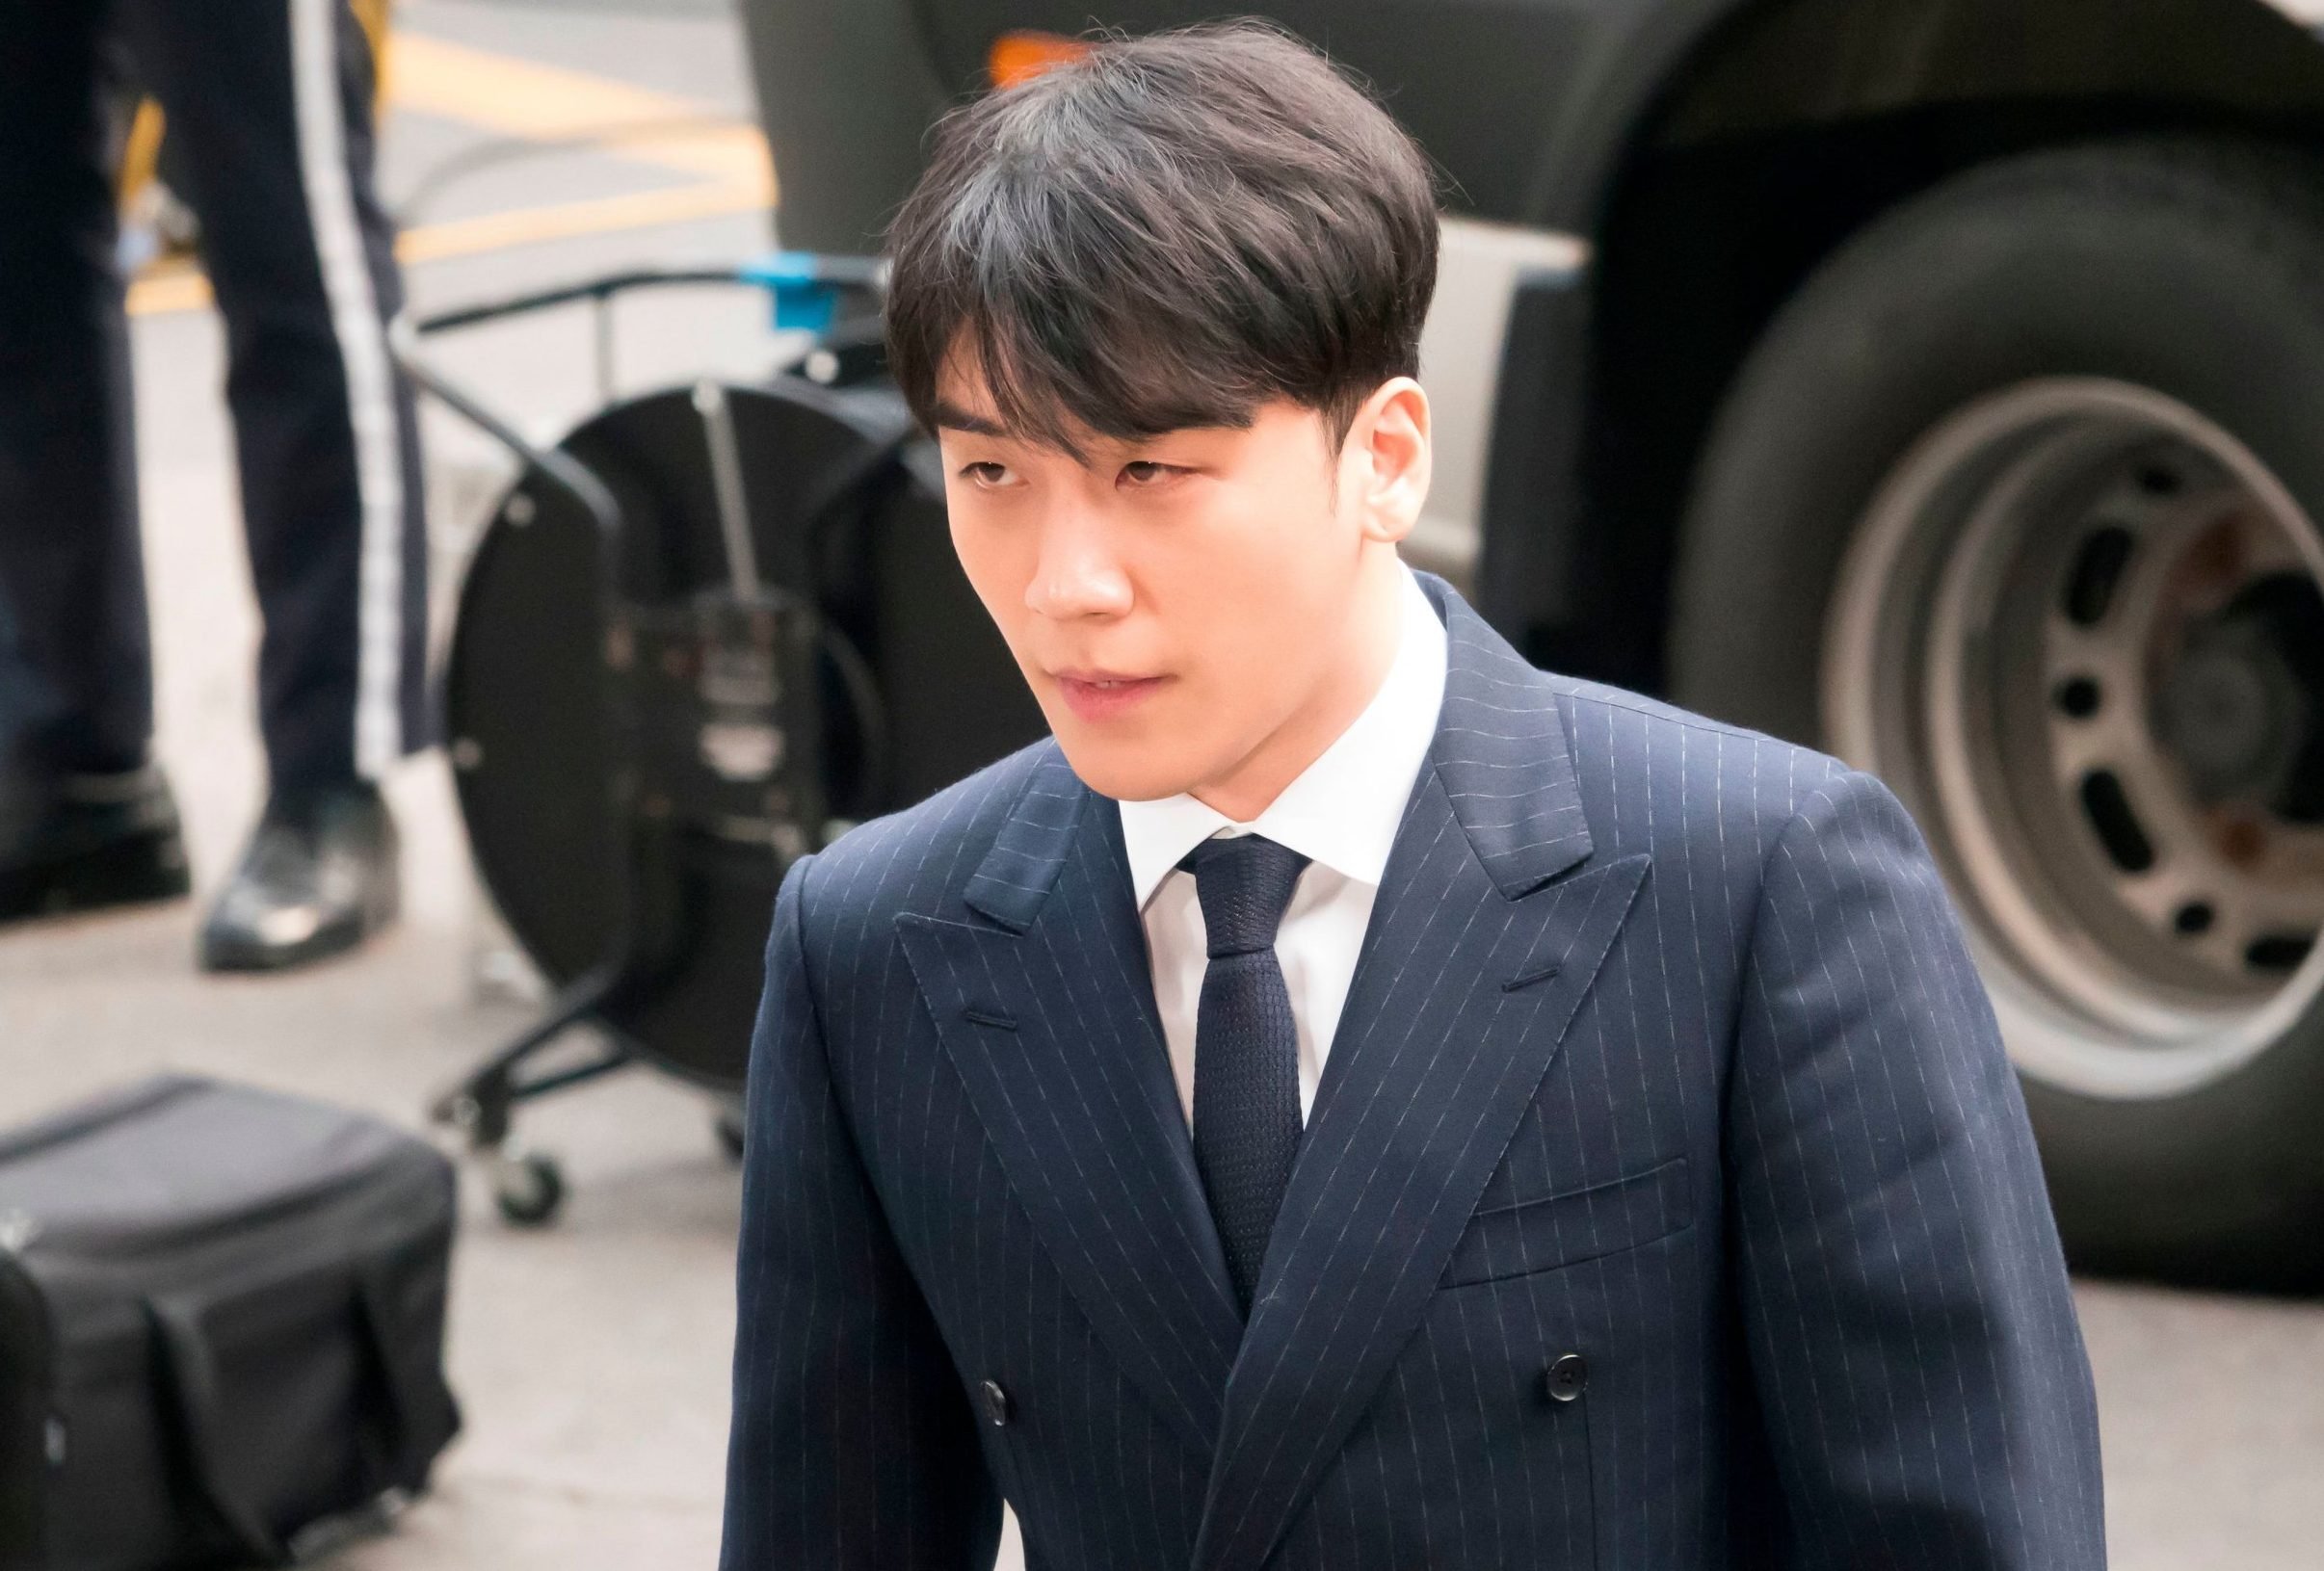 Mandatory Credit: Photo by Aflo/REX (10155579o) Lee Seung-hyun, a member of K-pop child rope BIGBANG, arrives during a Seoul Metropolitan Police Agency for military doubt over sex-for-favors allegations in Seoul, South Korea. Seungri qeustioned over sex-for-favors allegations, Seoul, South Korea - 14 Mar 2019 He is indicted of arranging passionate services for intensity investors in a nightclub in Seoul.